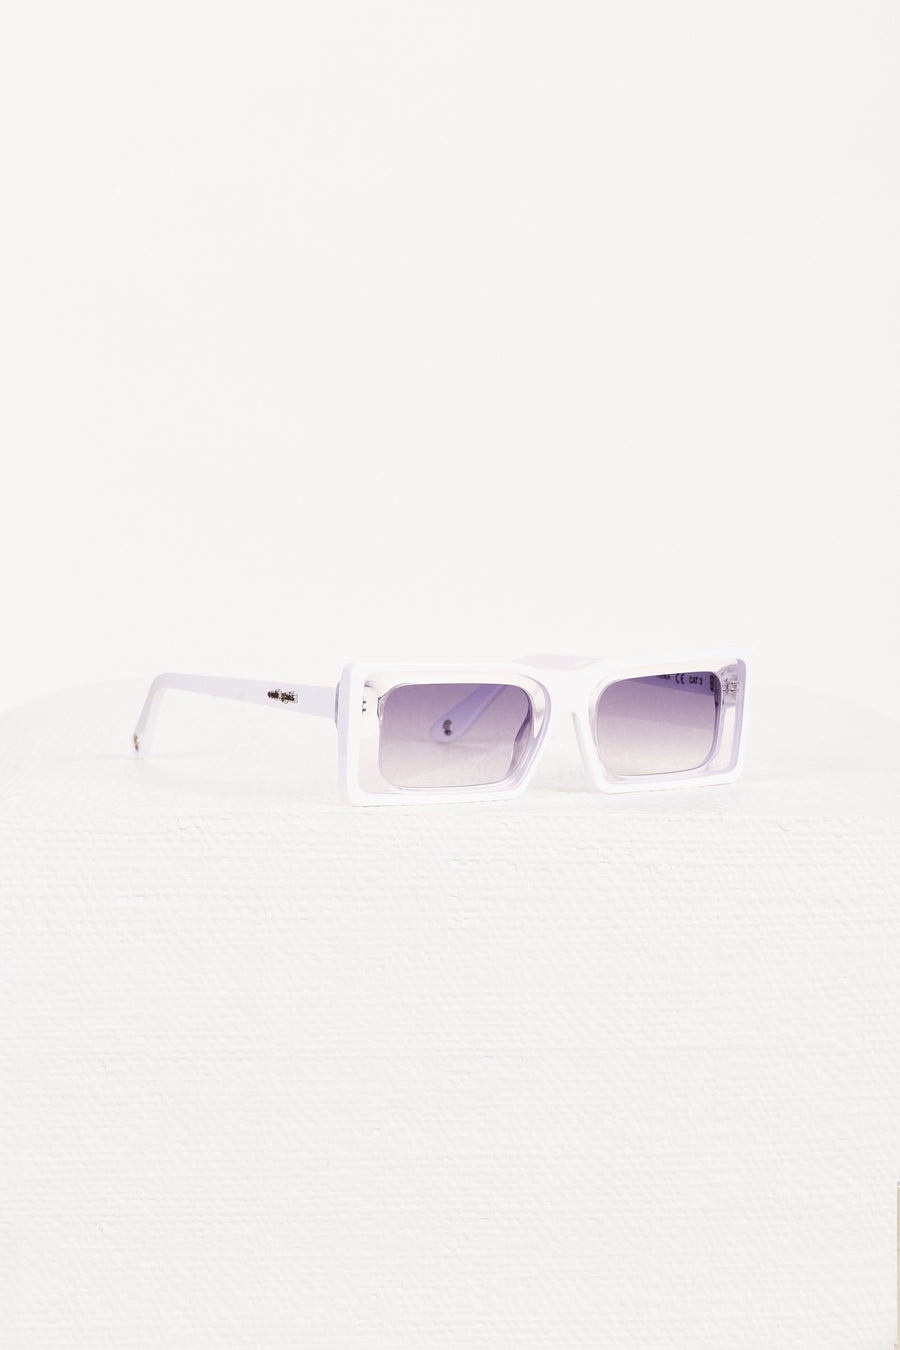 HERA SUNGLASSES - WHITE